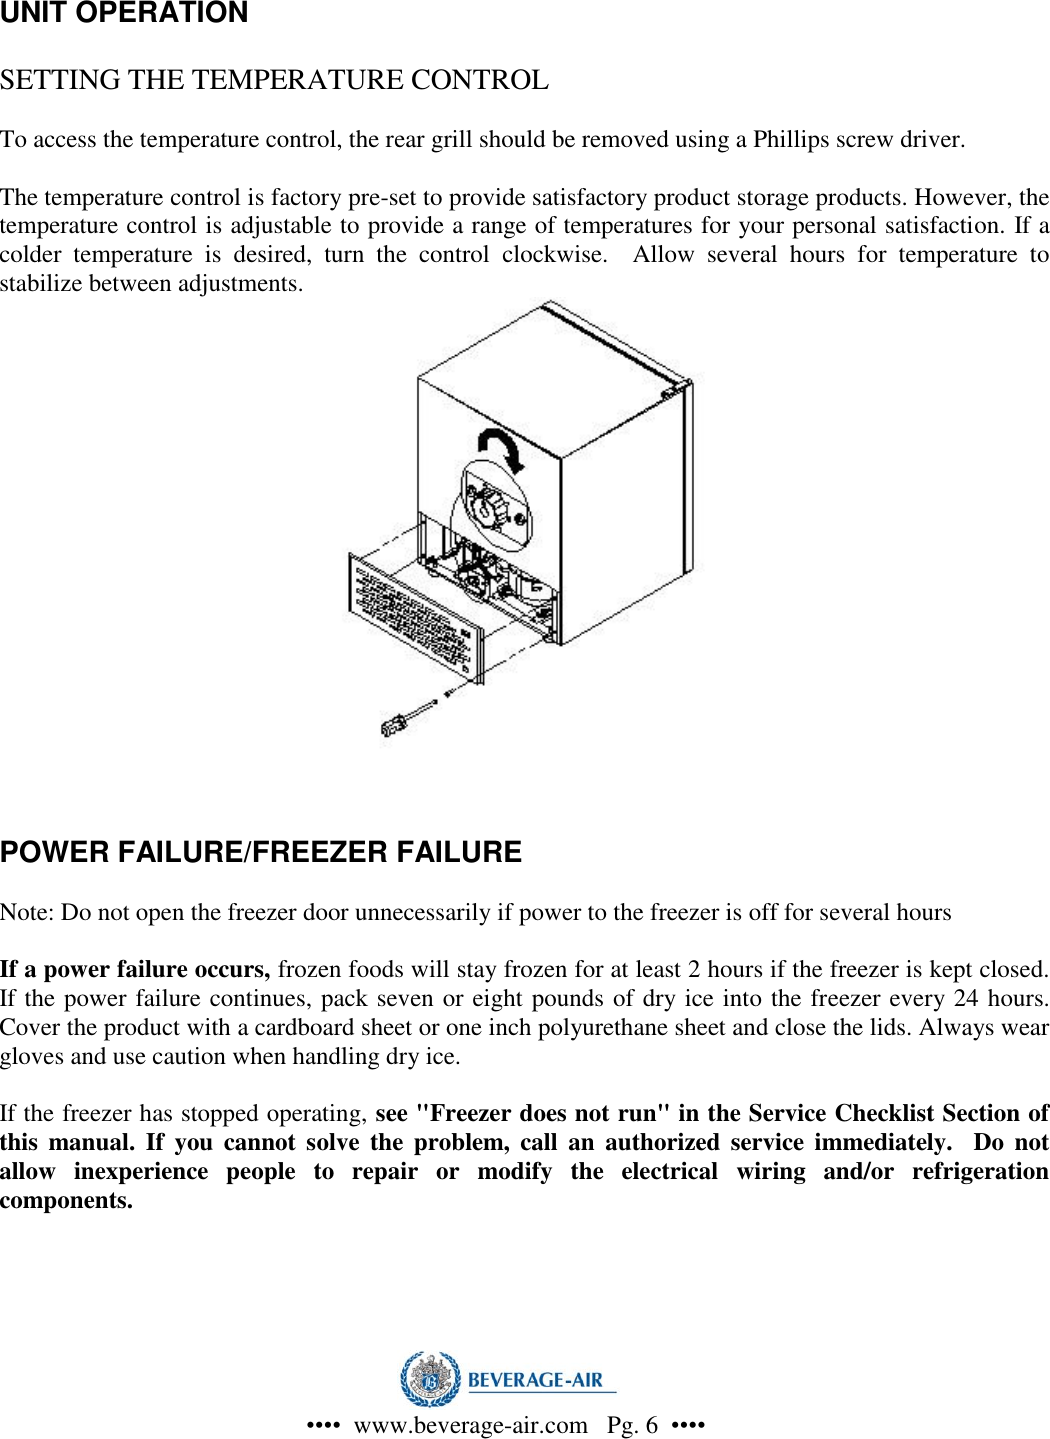 Beverage Air Wiring Diagrams Cf 3 Users Manual Page 6 Of 12